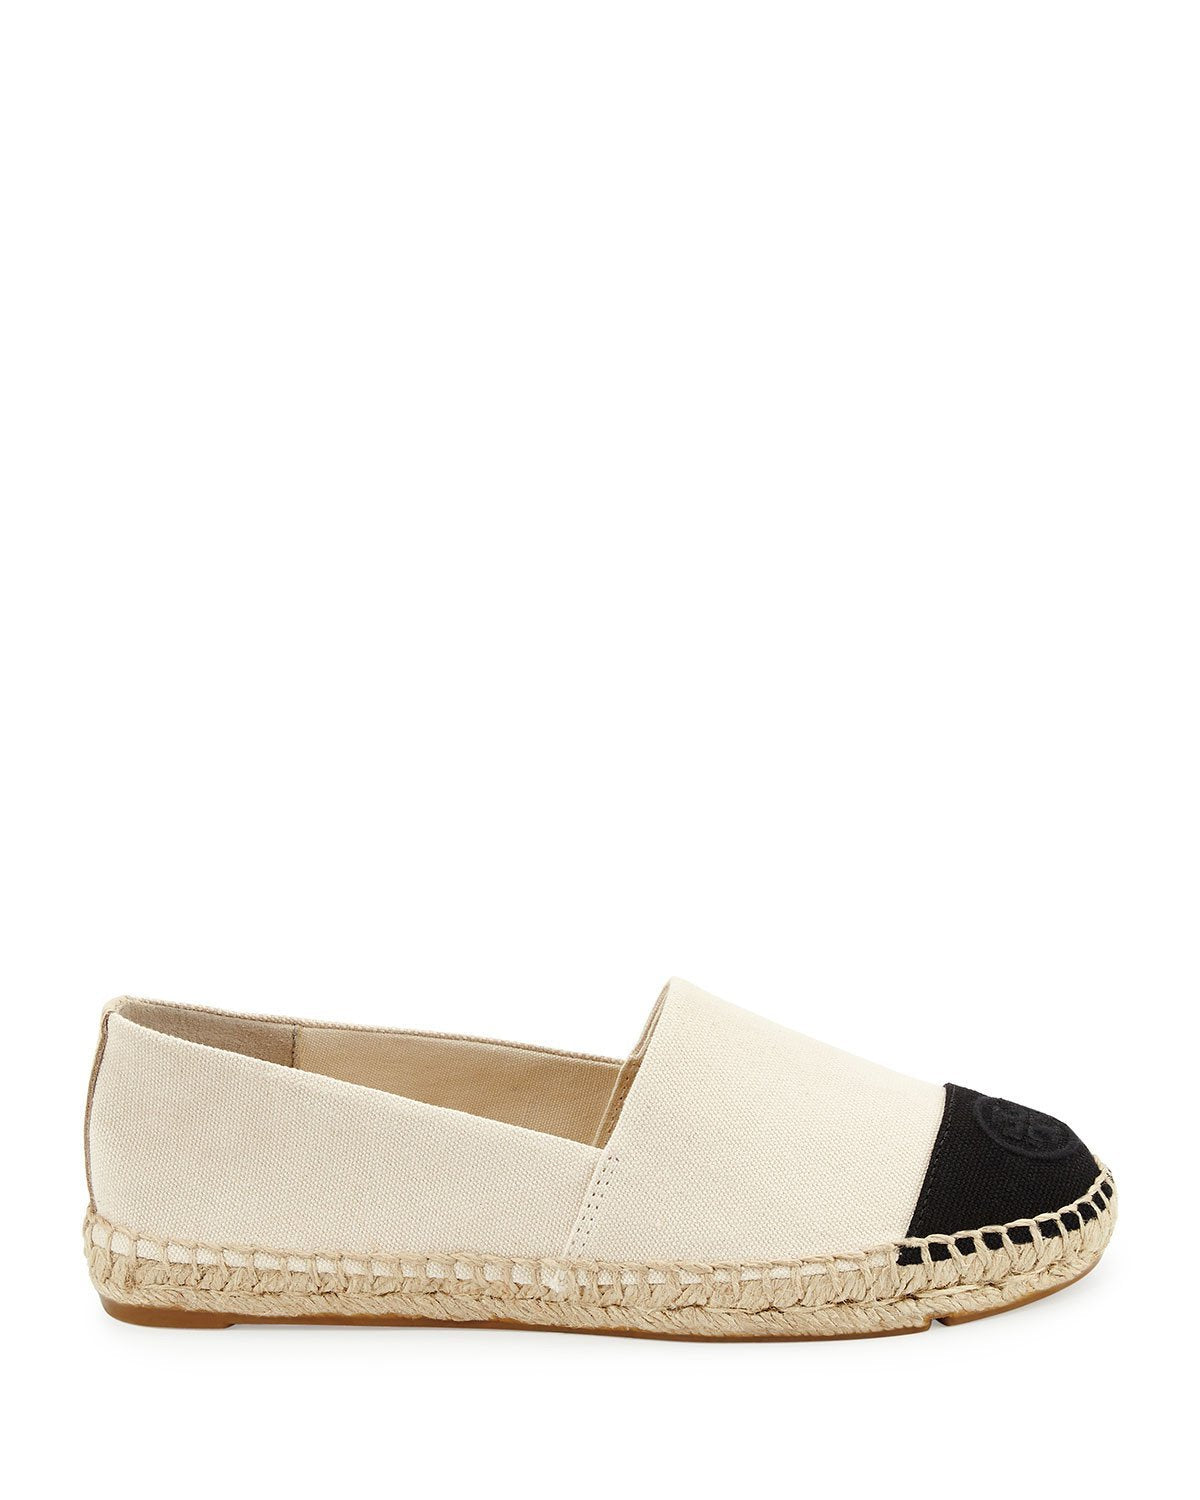 Canvas Colorblock Espadrilles | Tory Burch